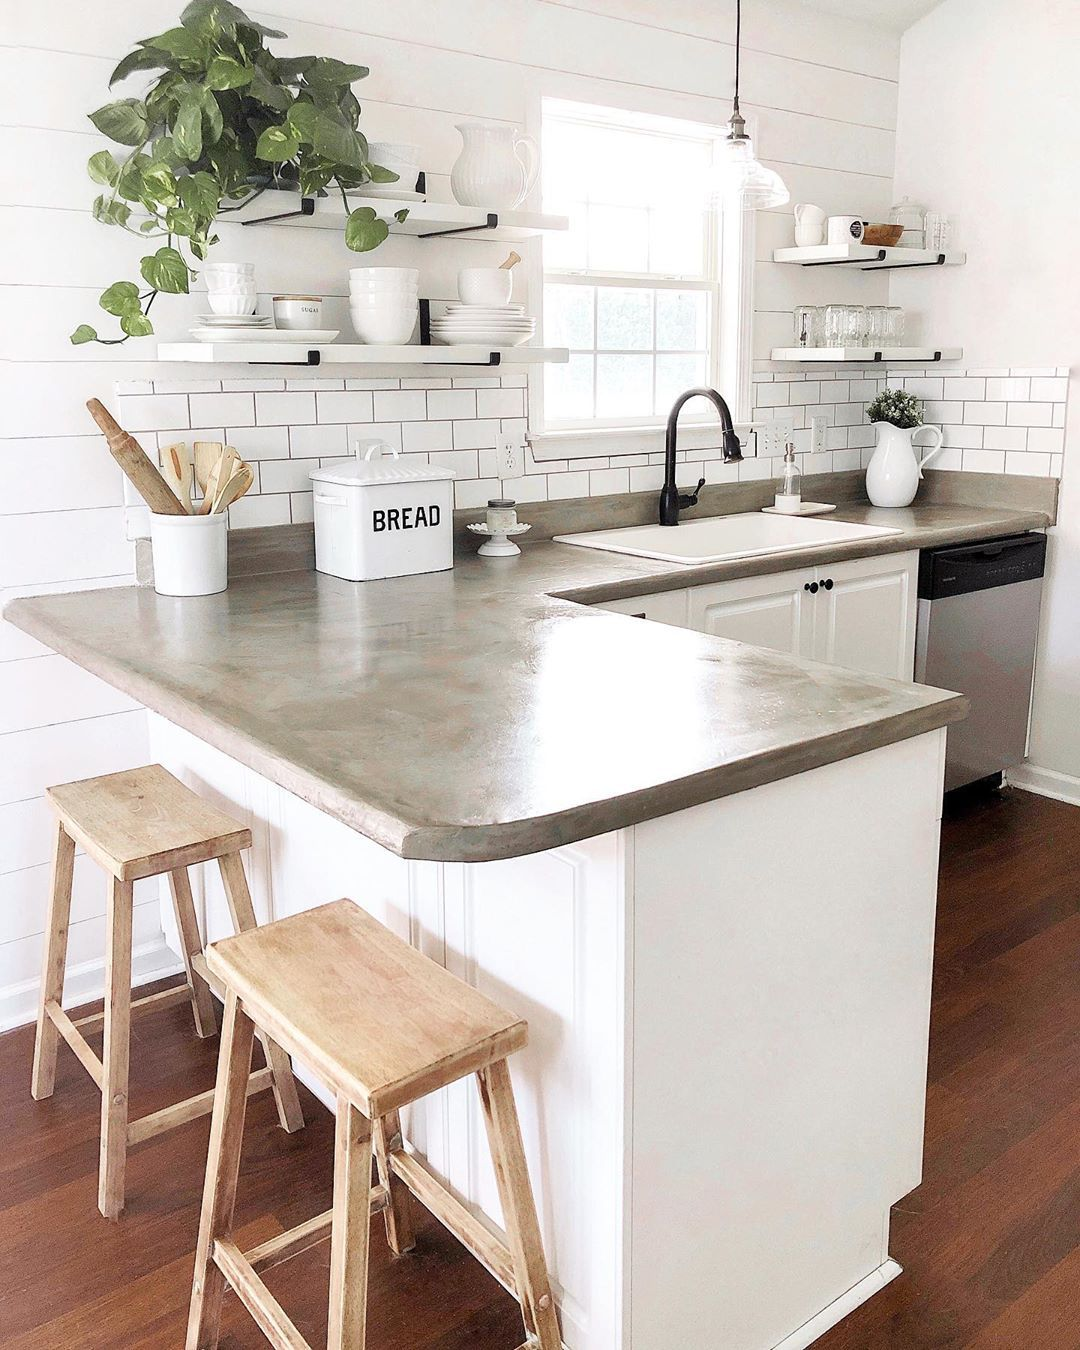 Our Vintage Enamel Bread Box Is A Farmhouse Favorite It Looks So Fun In This Simply Styled Farmhouse Kitchen Farmhouse Sink Kitchen Modern Farmhouse Kitchens